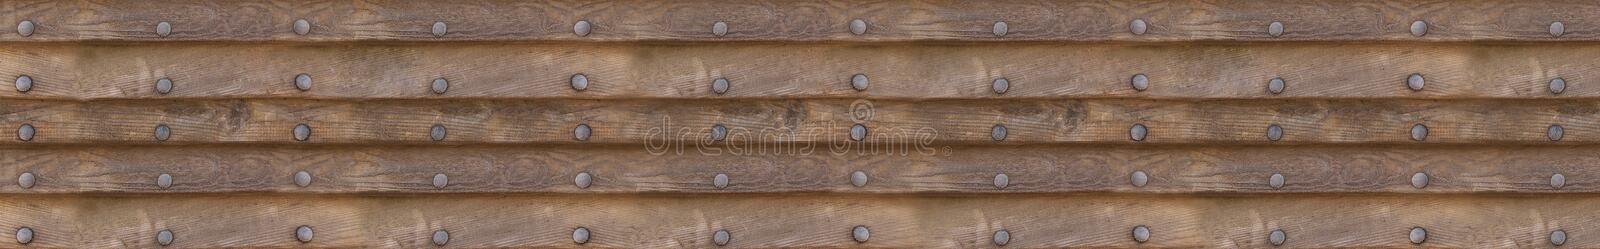 Panoramic background of wooden horizontal panels with metal rivets on isolated background. Panoramic background of wooden horizontal panels with metal rivets on stock photos